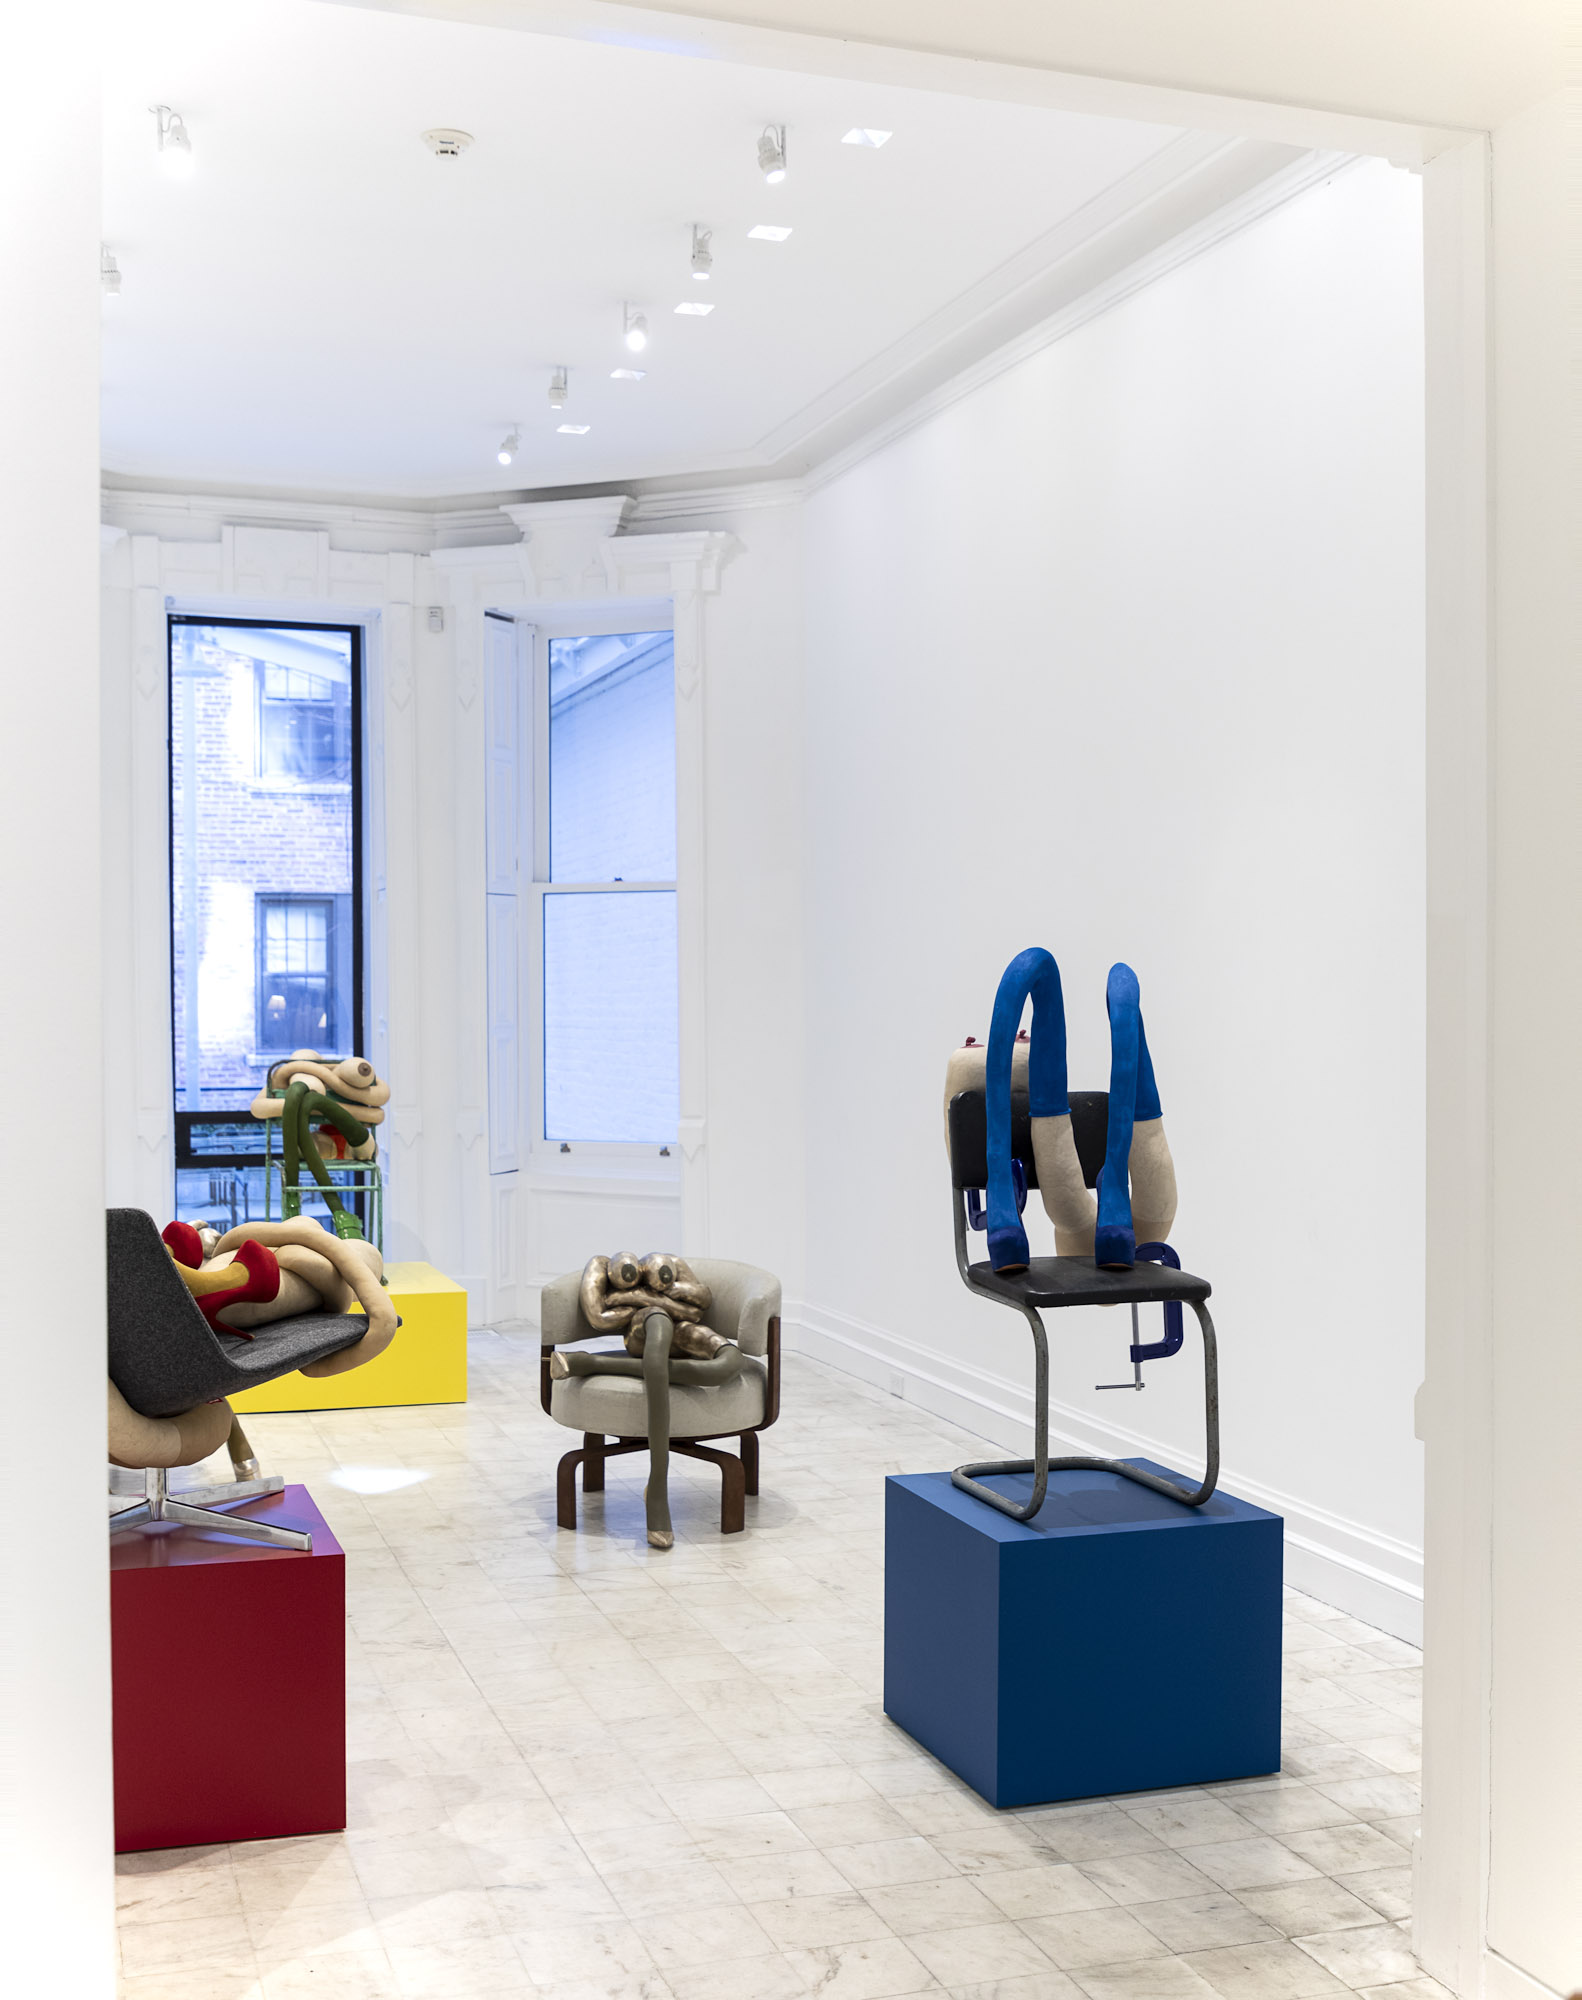 Installation view, Sarah Lucas: <i>HONEY PIE</i>, at Gladstone 64, New York, 2020